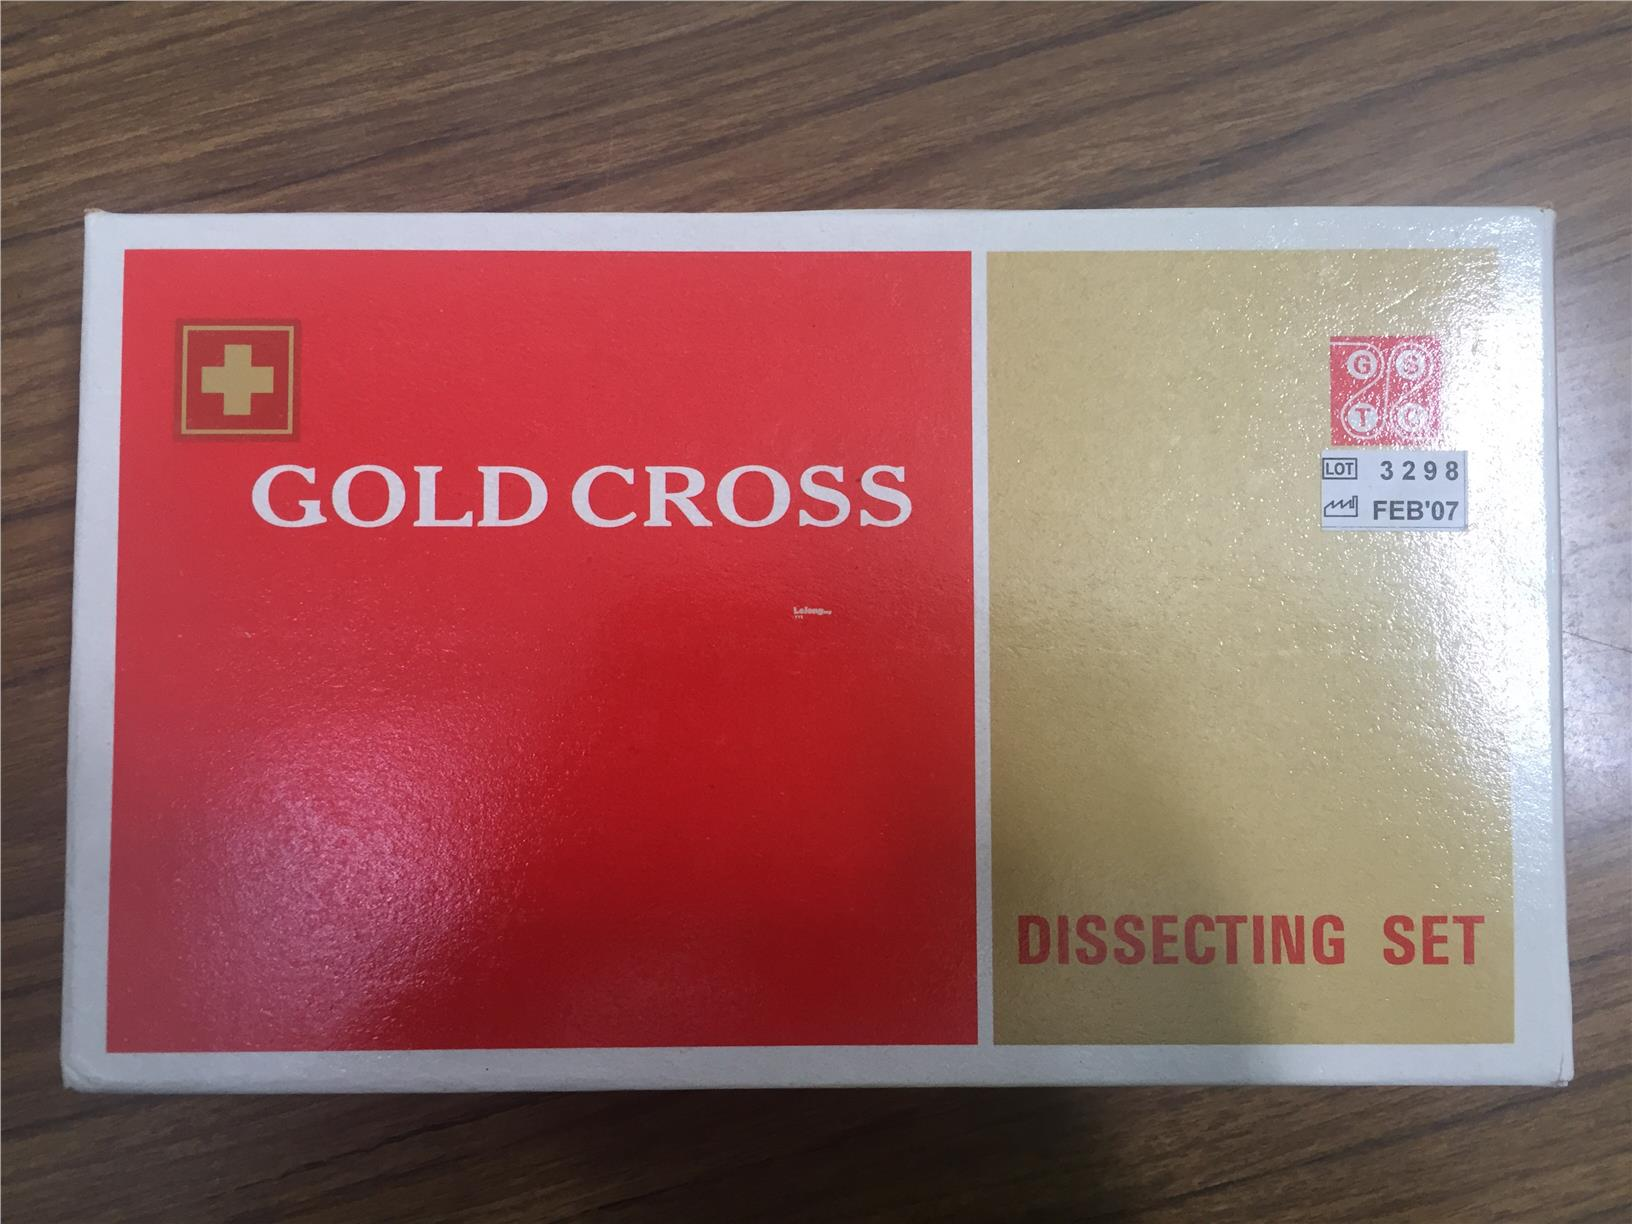 Gold Cross Dissecting Set